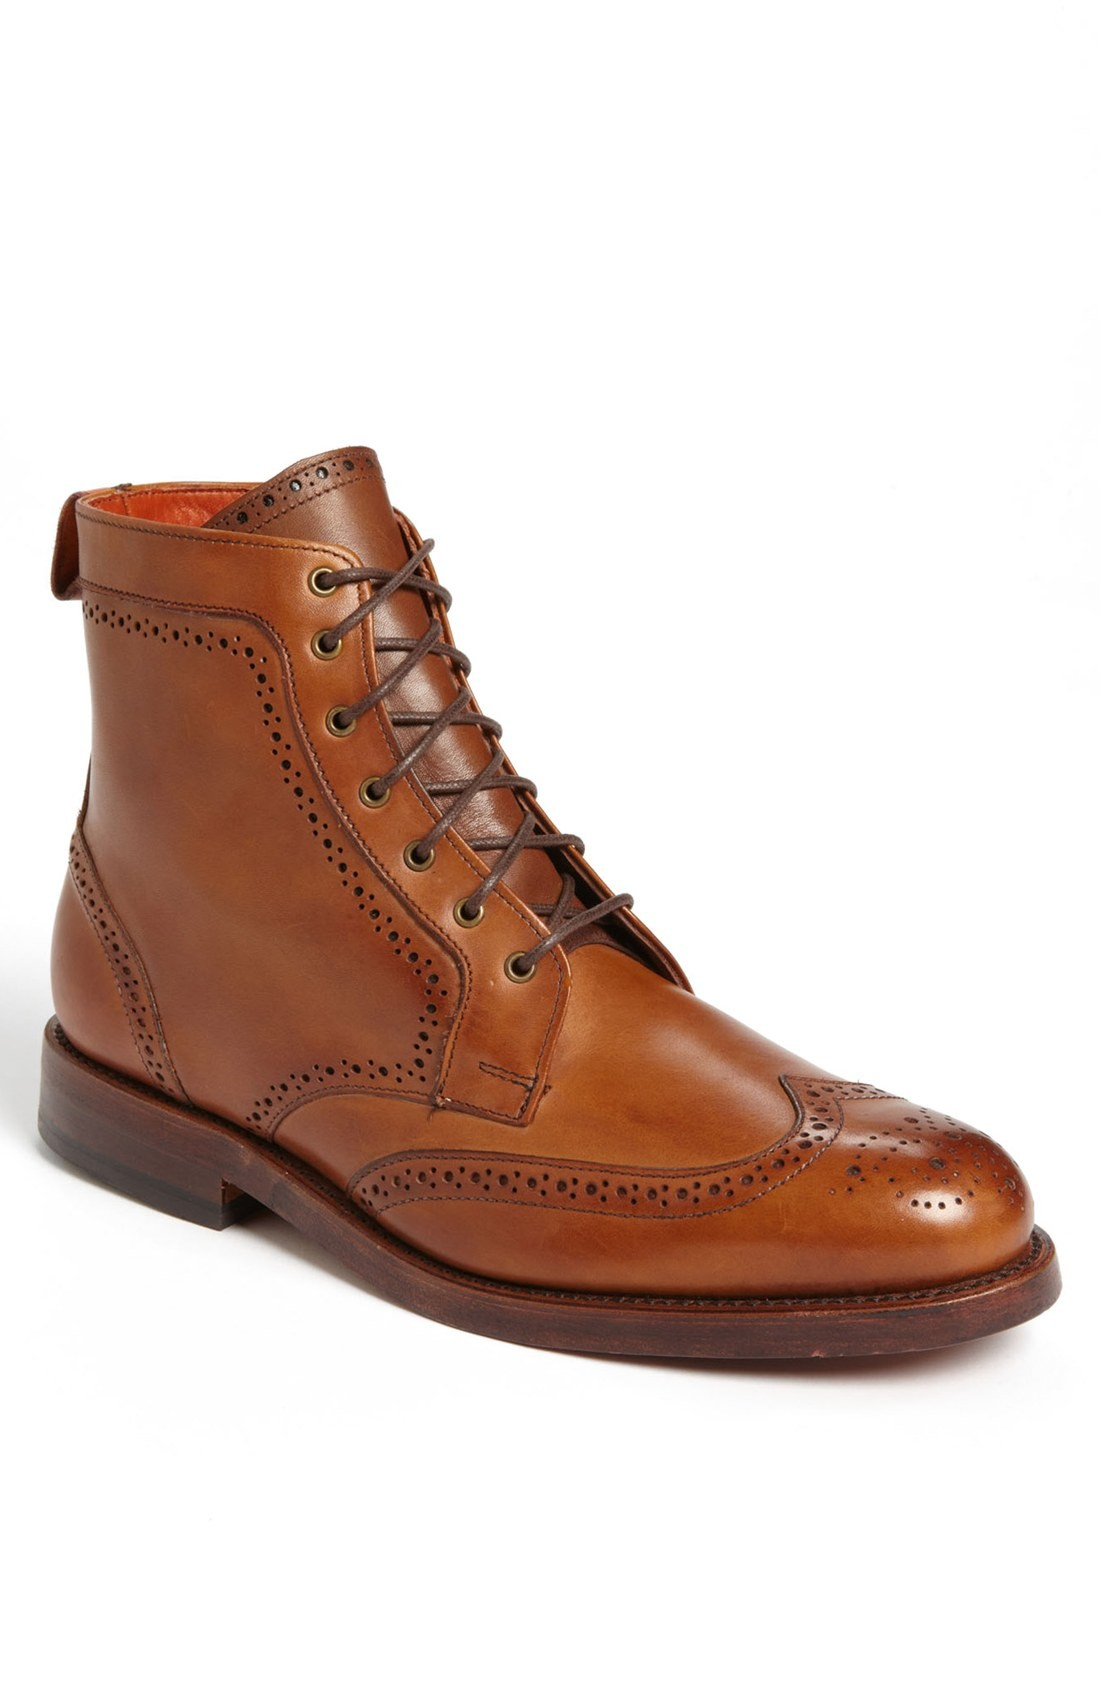 mens dress boots allen edmonds u0027daltonu0027 water resistant wingtip boot (men) (online ... hiovsjg